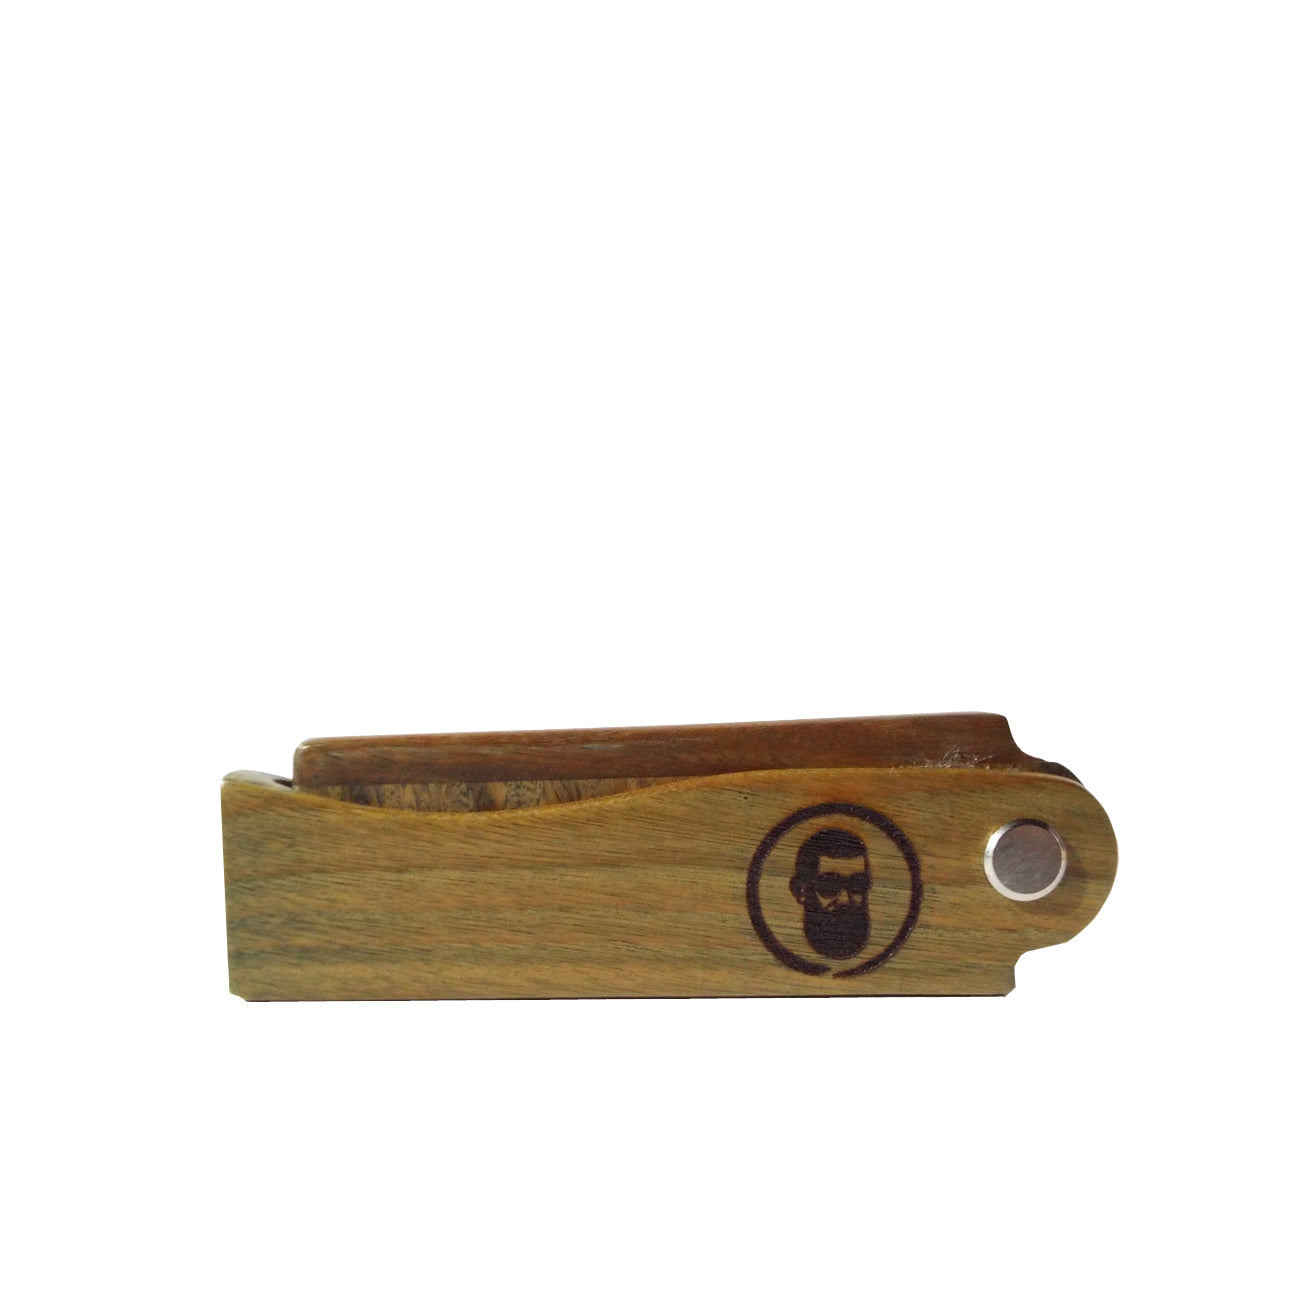 Sandalwood Folding Beard/Hair Comb  (Personalised) - Good Day Organics Ltd